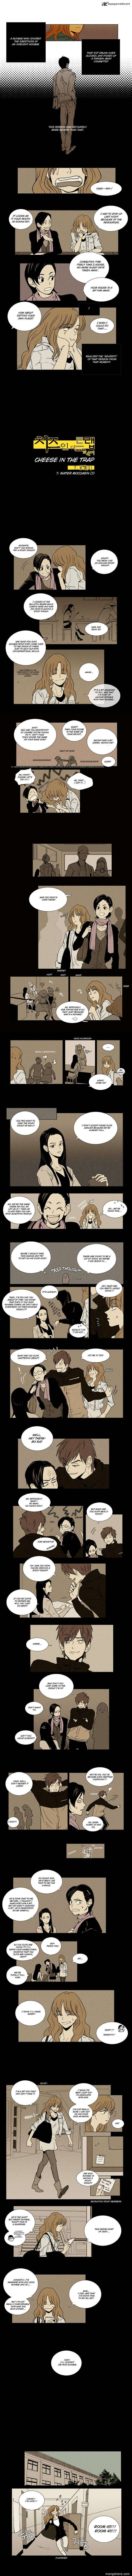 Cheese In The Trap 7 Page 1